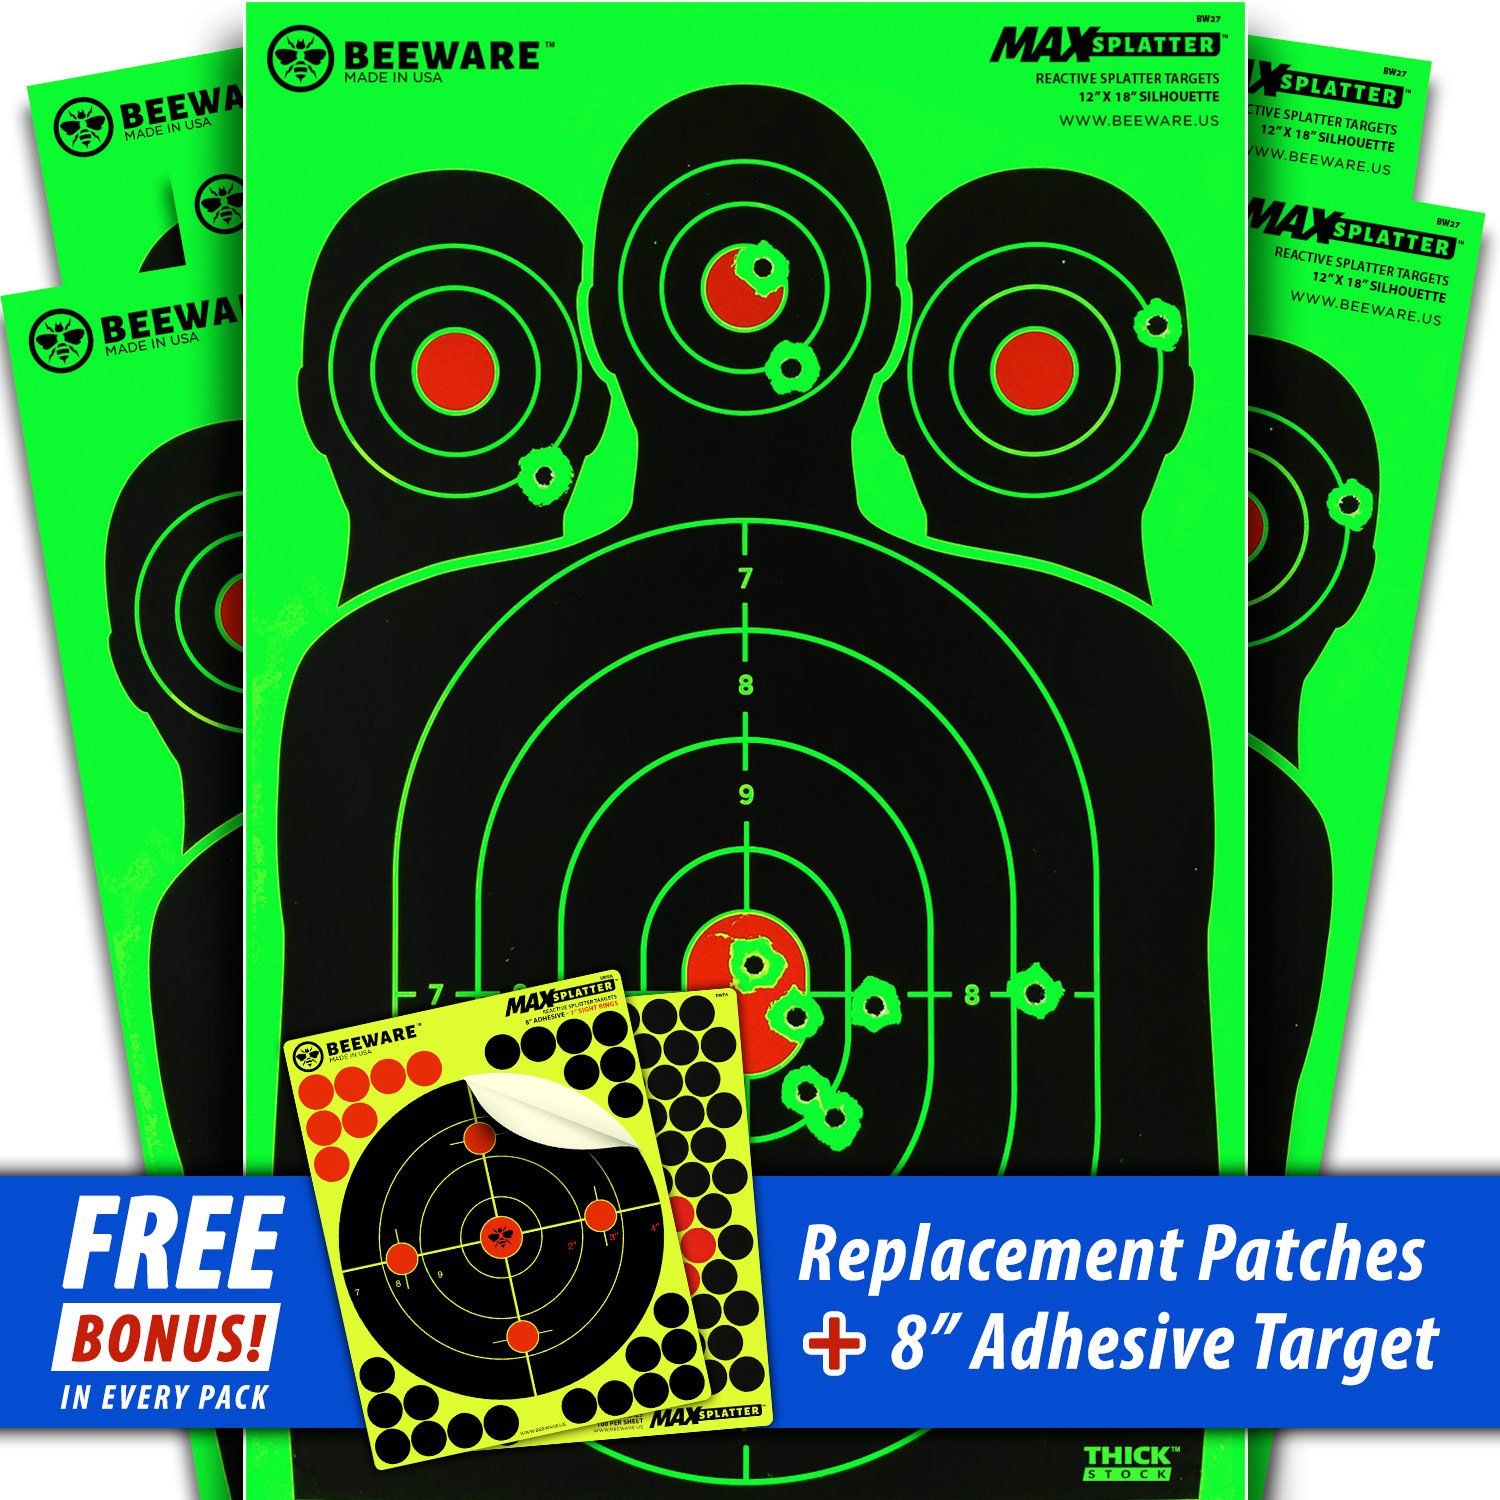 a4c426f2bf1 BEEWARE Premium Splatter Shooting Targets 12x18 Silhouette Green or Yellow